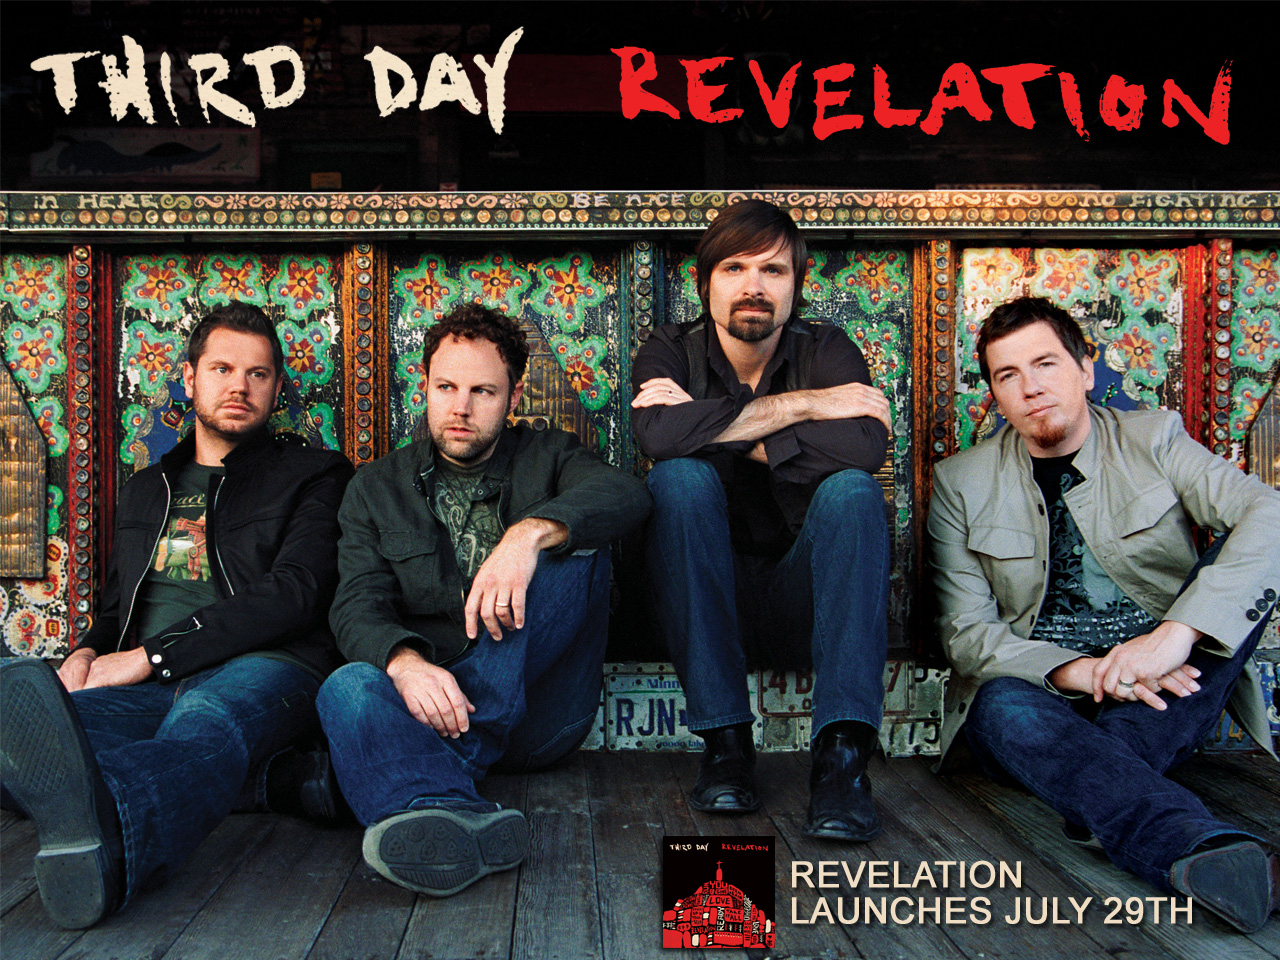 Third Day Revelation